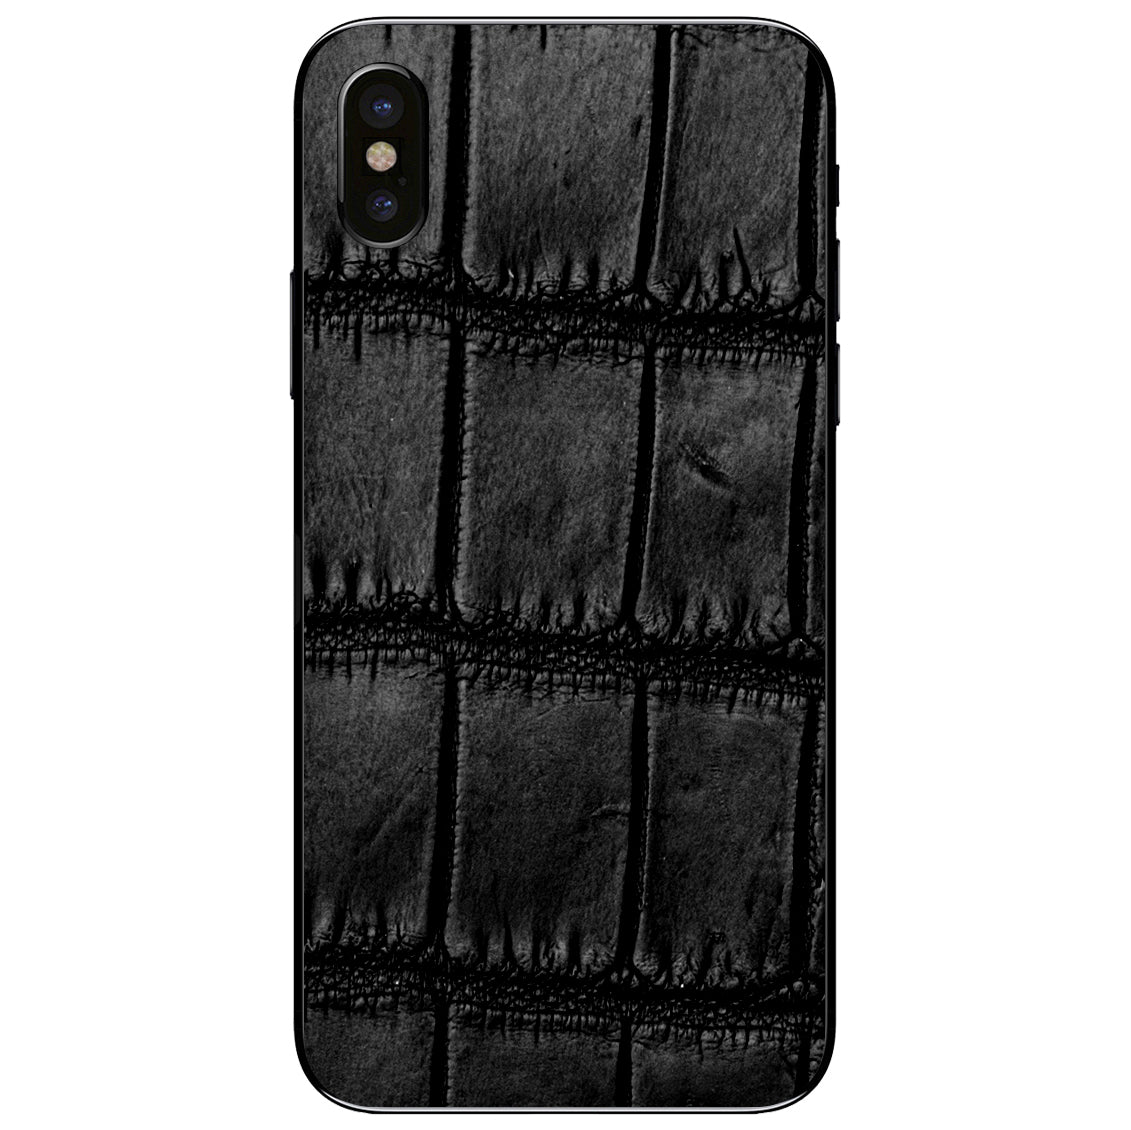 Oiled Black Alligator iPhone XS Leather Skin